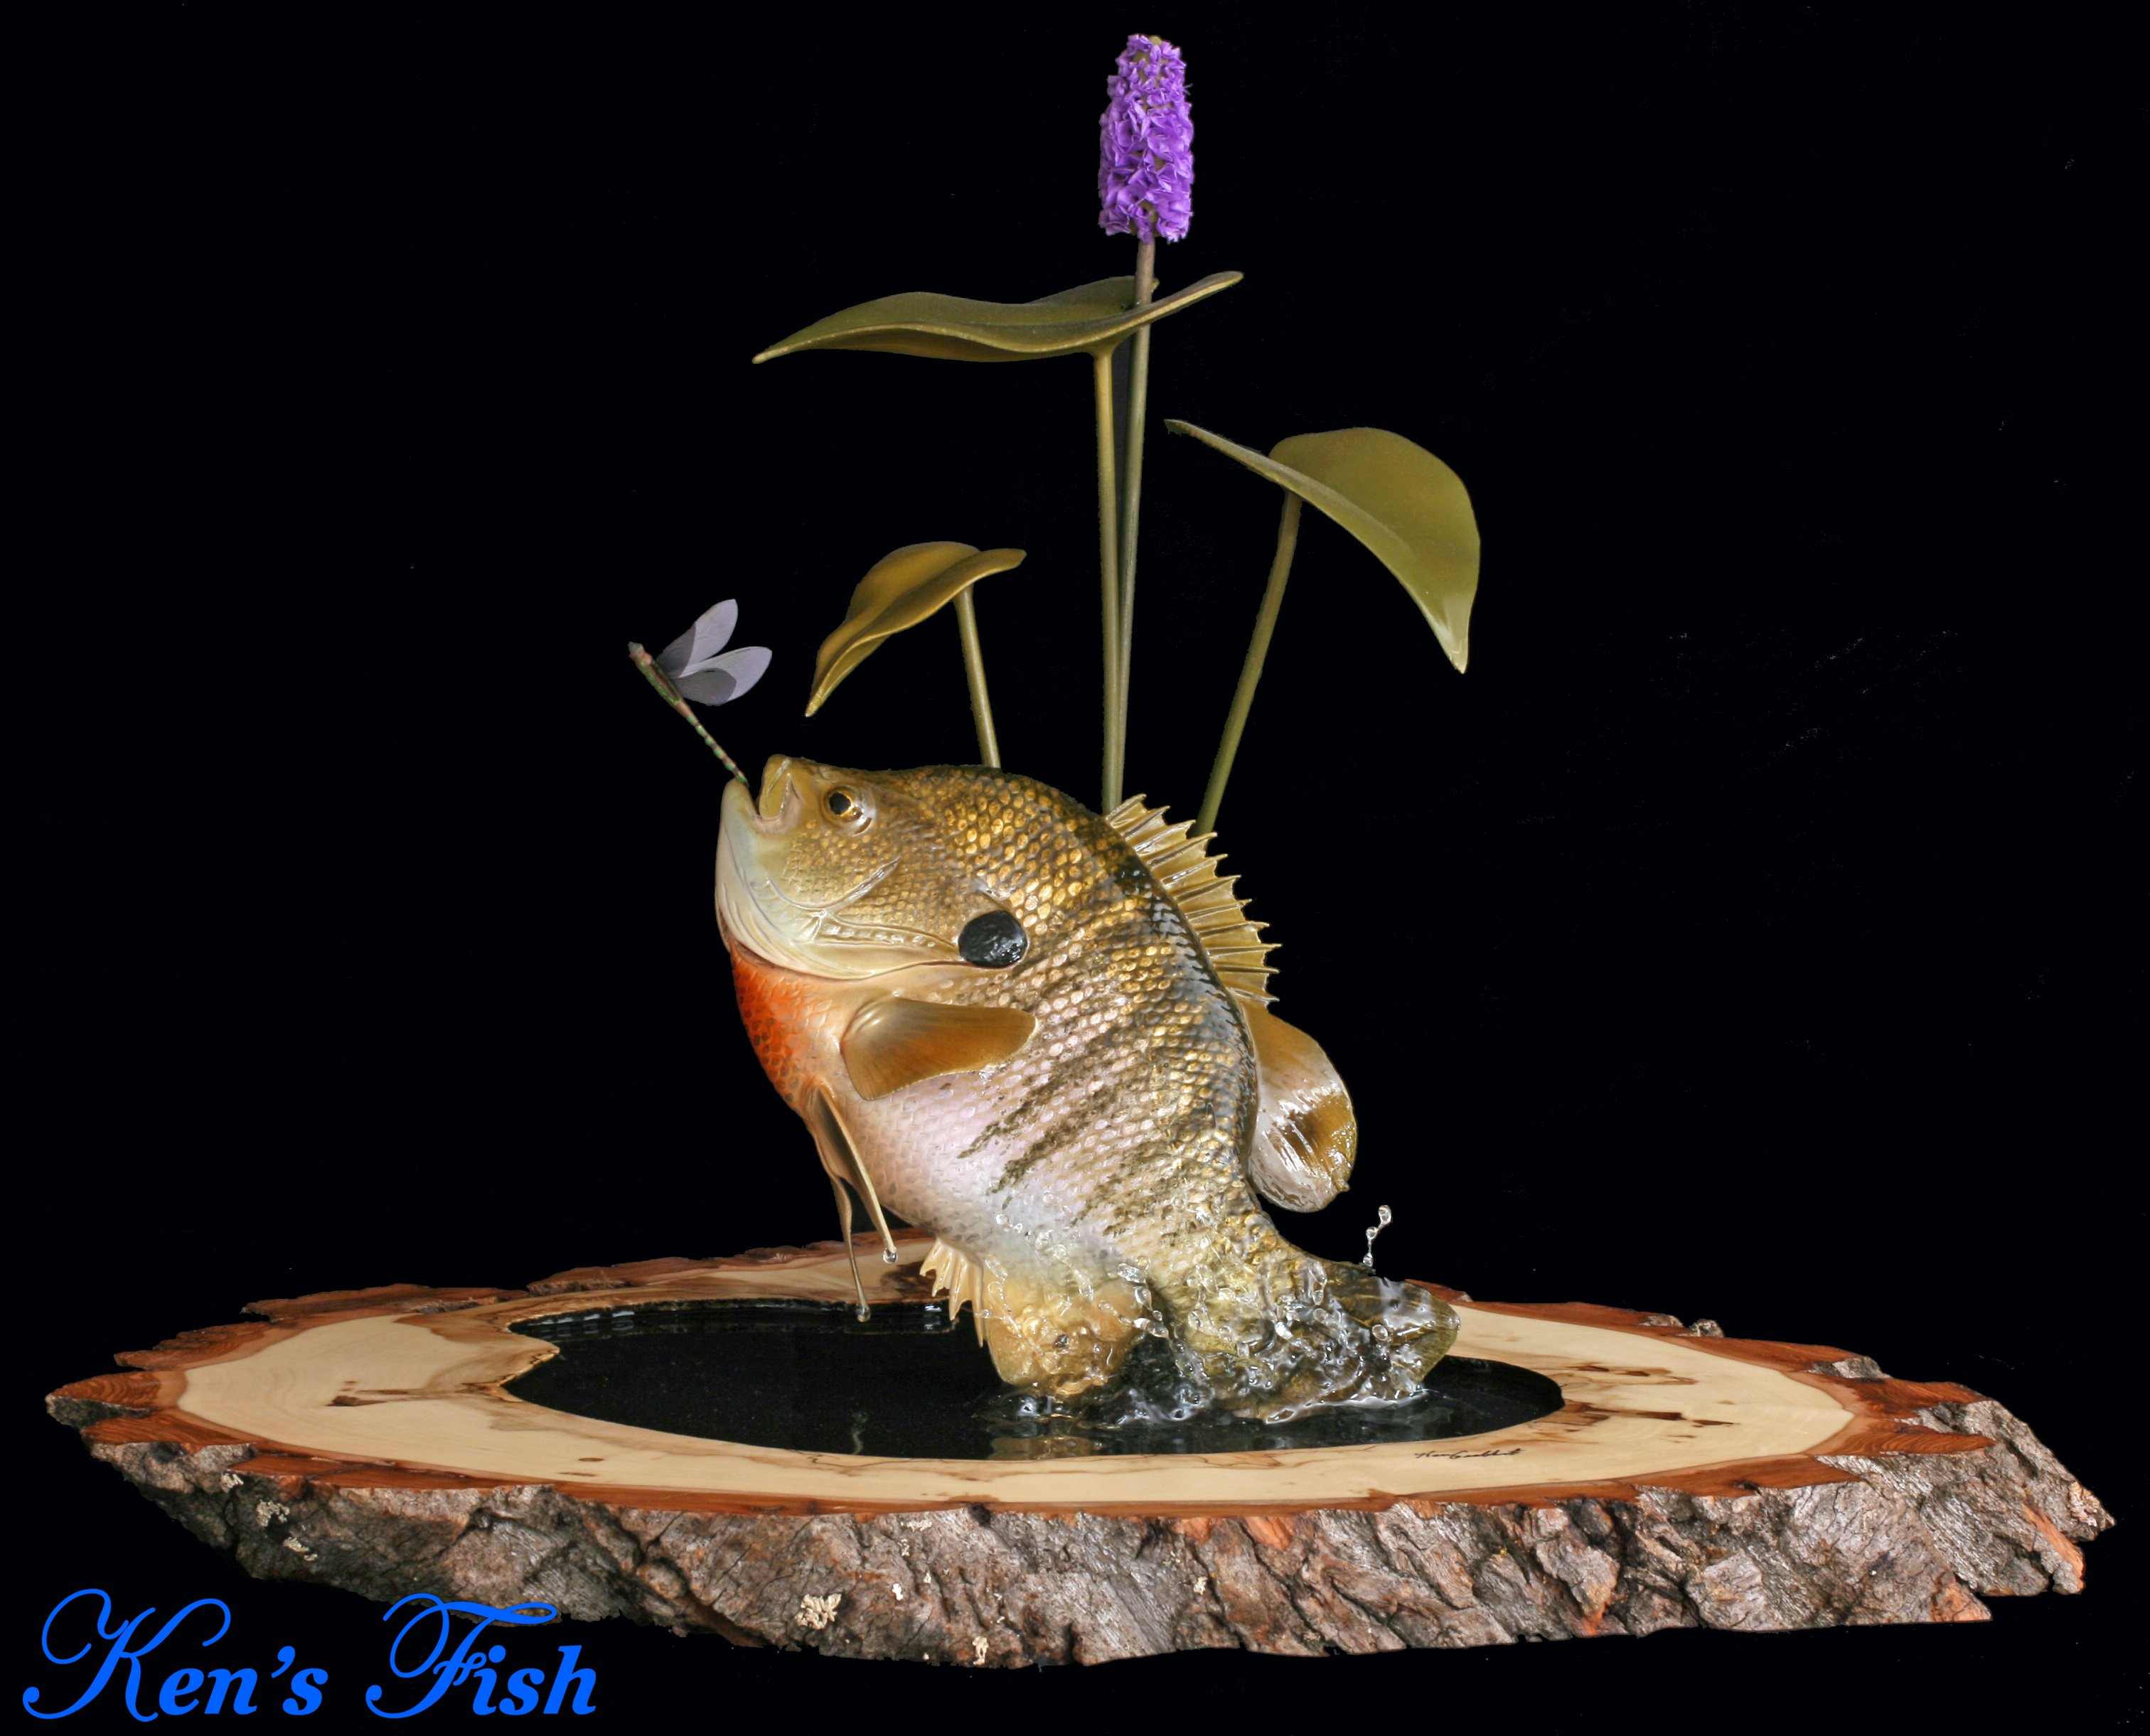 Ken grabbert anglers artistry the art of taxidermy with